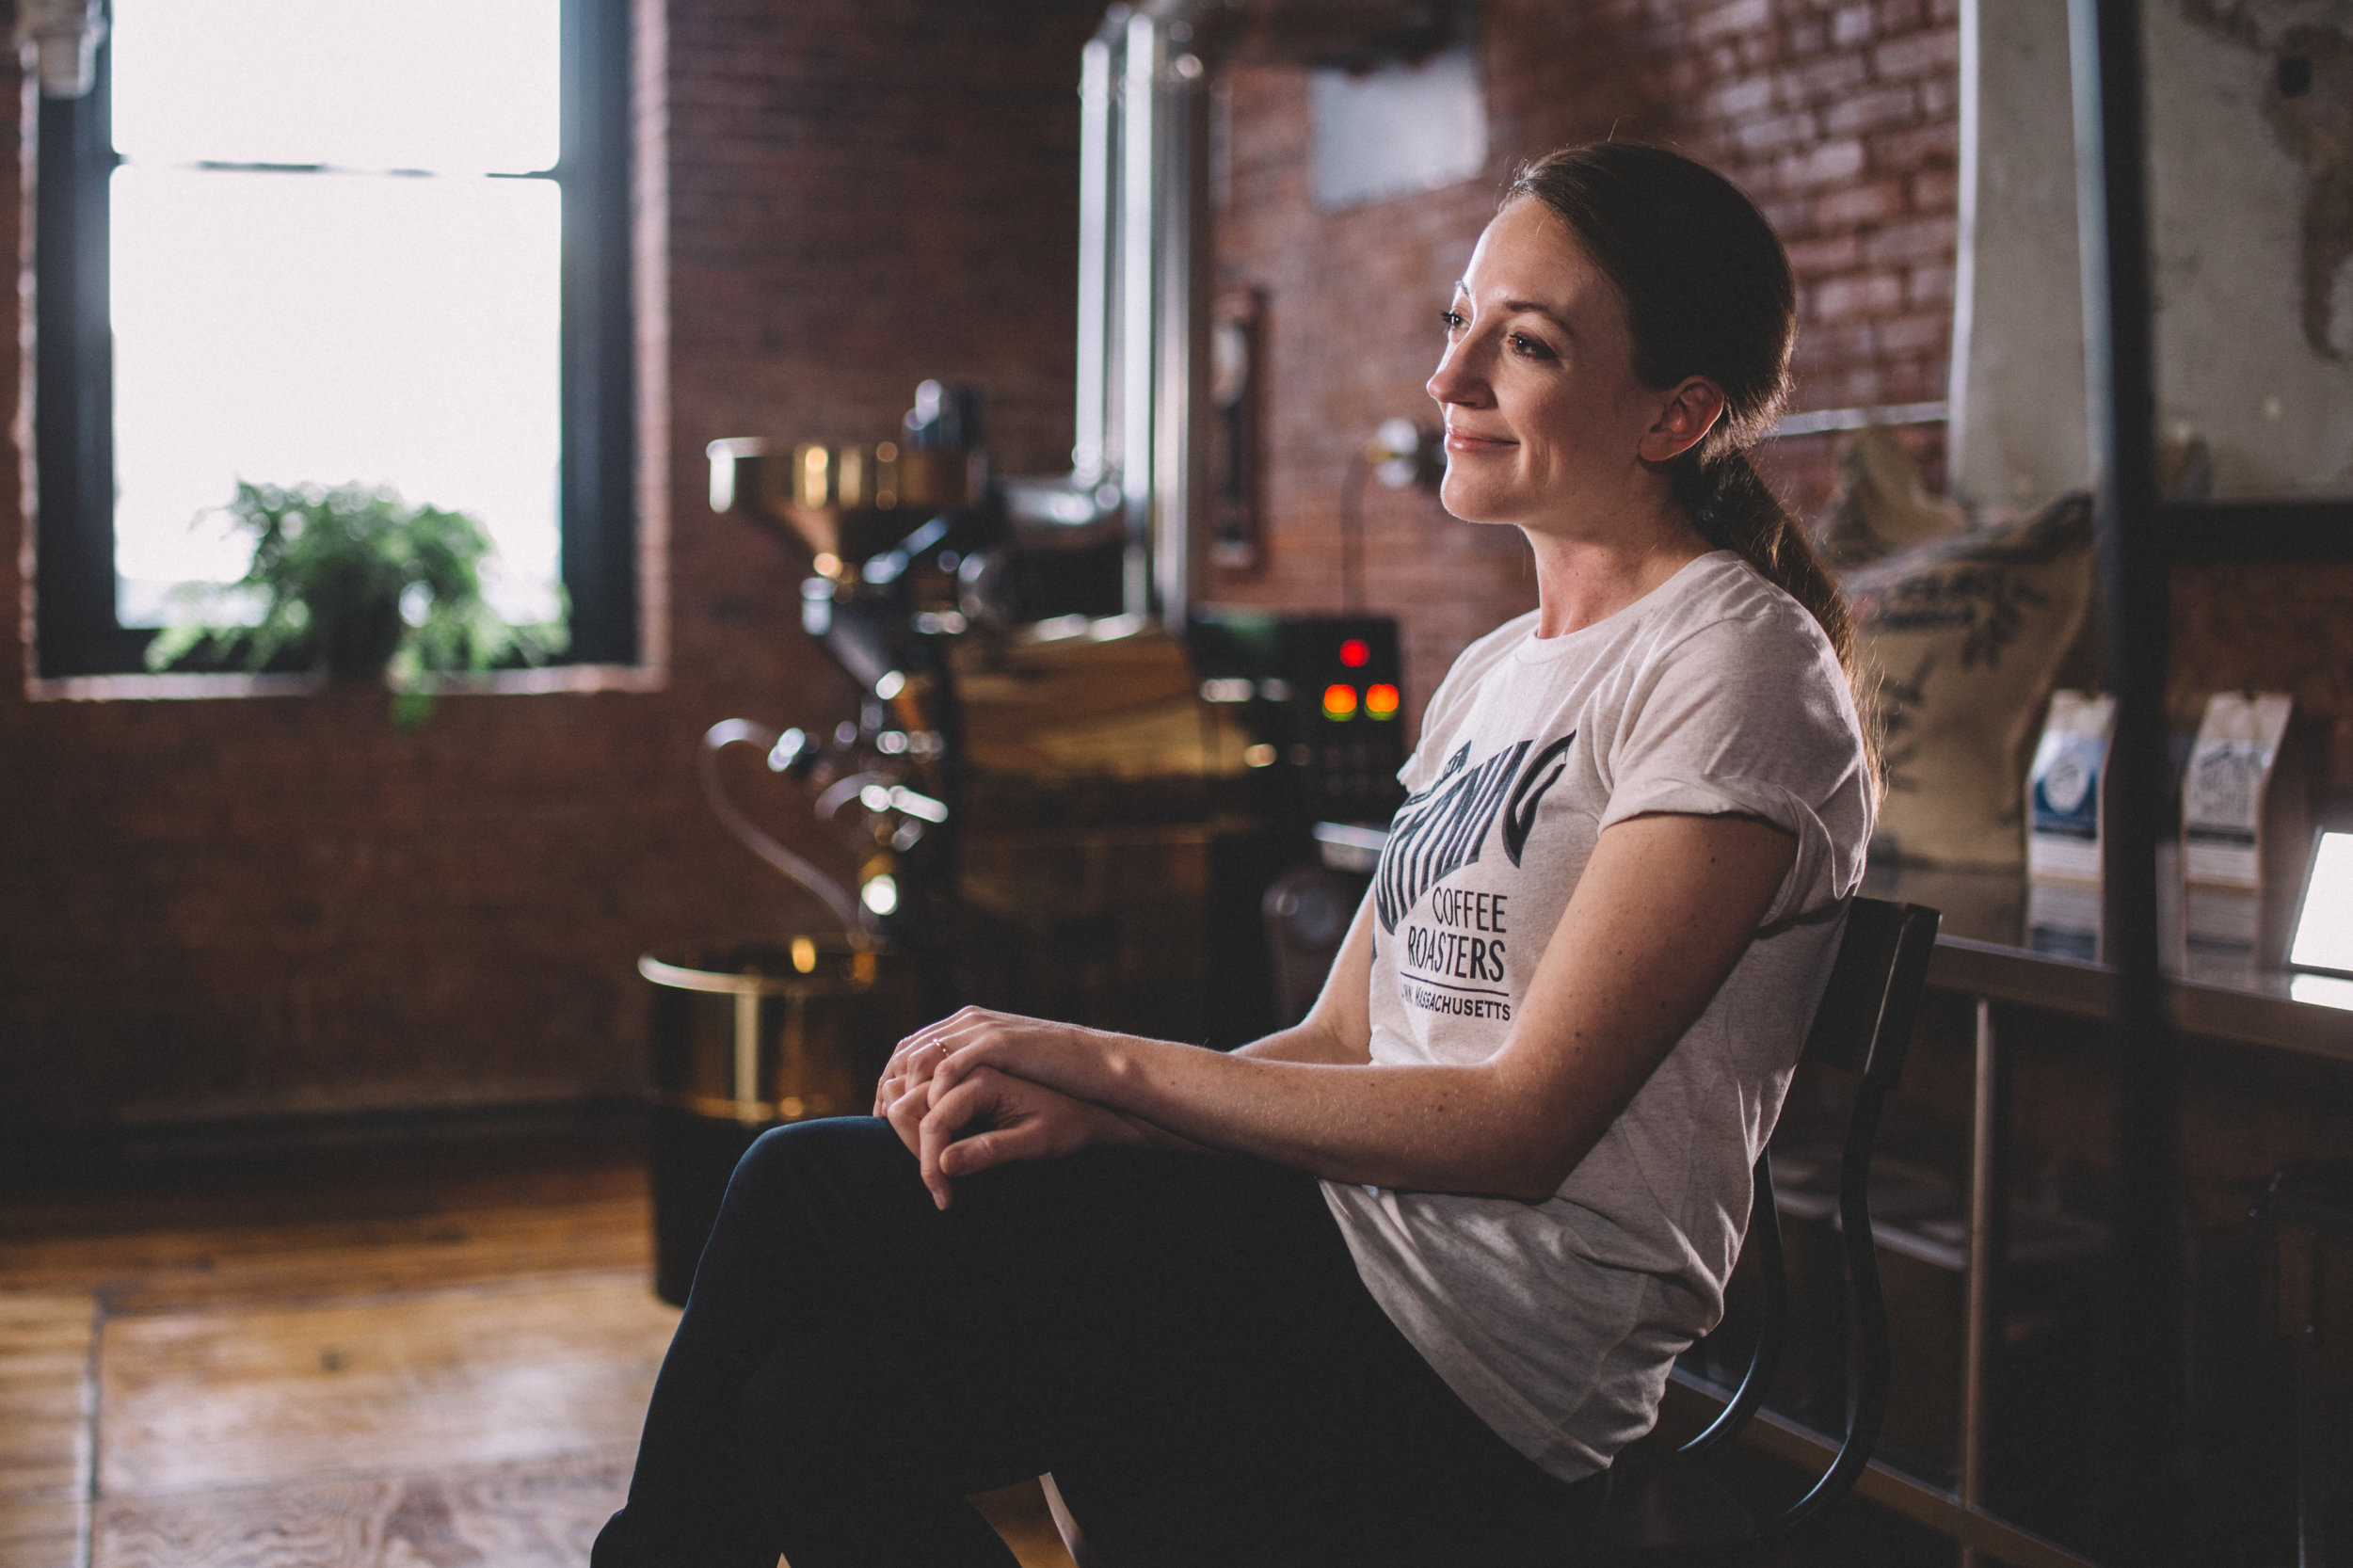 Rachel Bennett - LIGHTNING ROASTERS - Nils and his team are very thoughtful and professional. Their enthusiasm is infectious and we are sooo excited to work with them and be part of The Pour community!